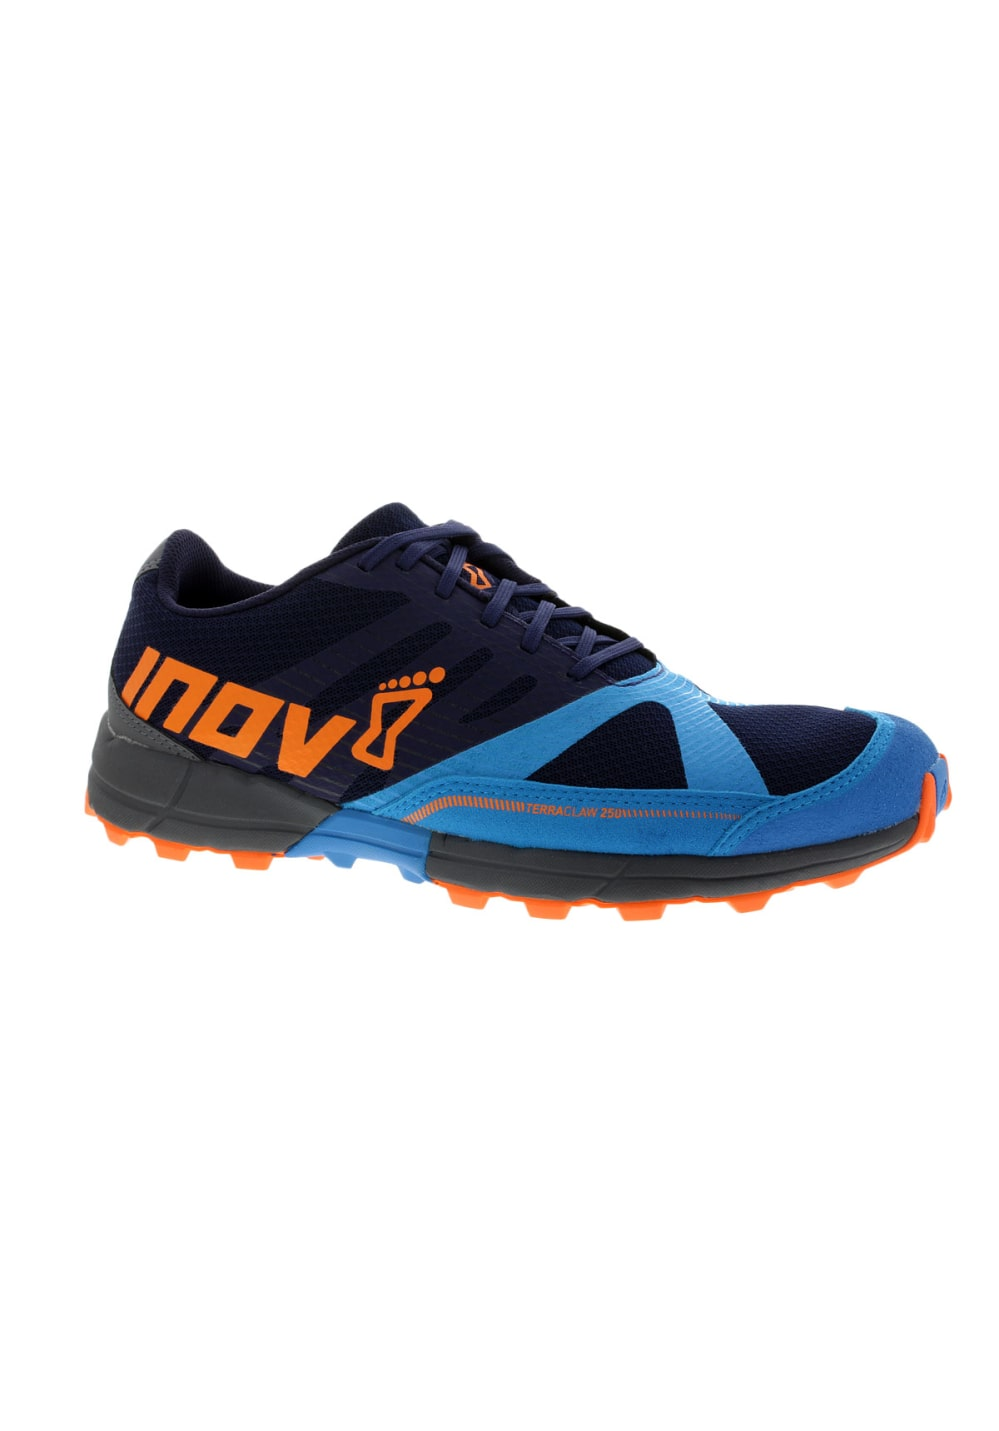 Inov-8 Terraclaw 220 Hommes Chaussures running